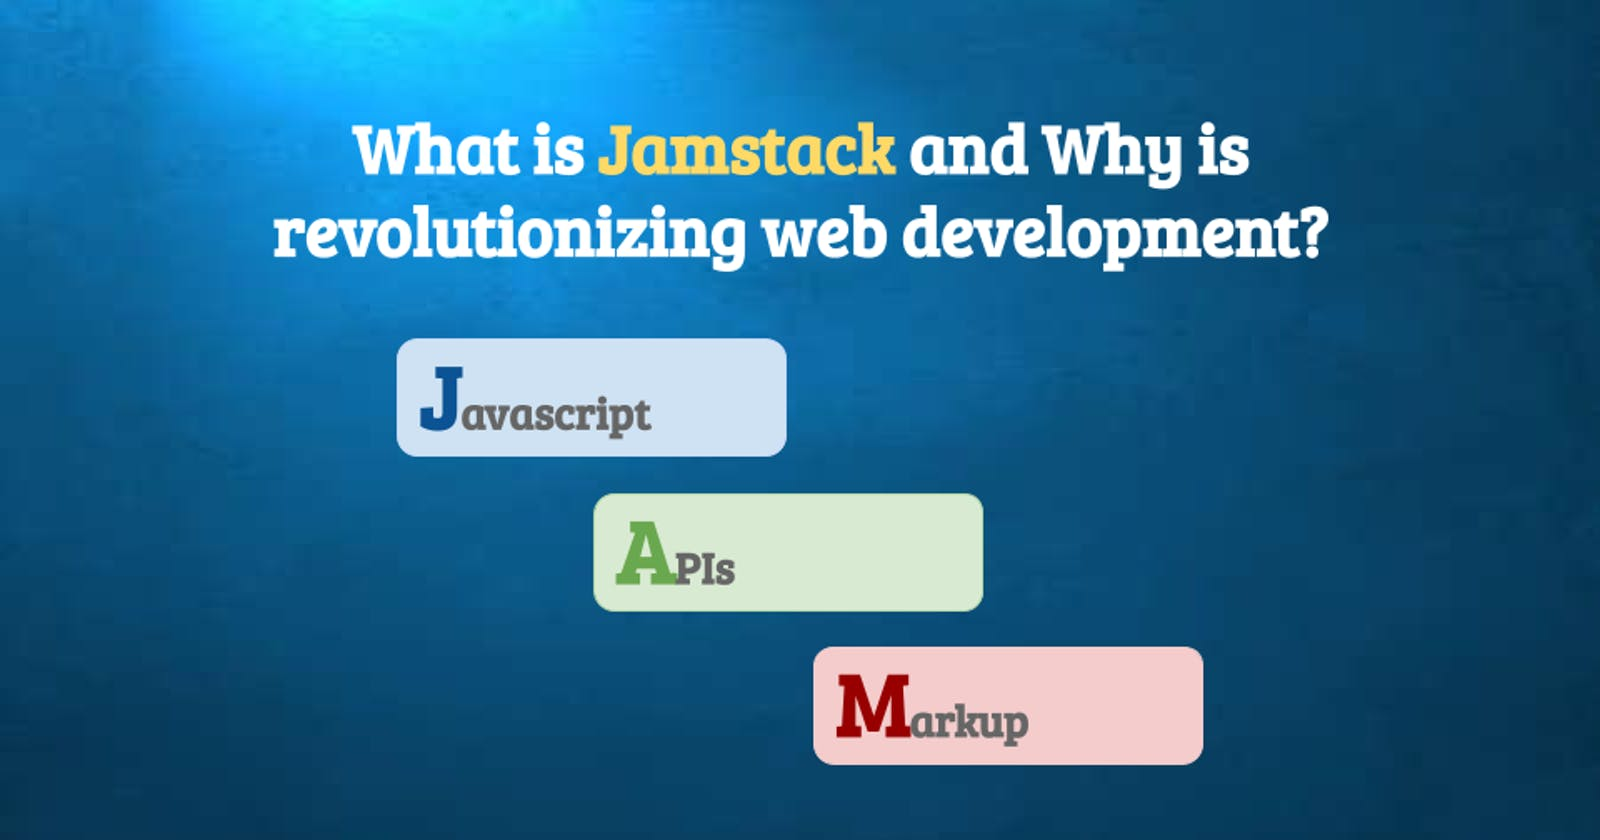 What is Jamstack and Why is revolutionizing web development?